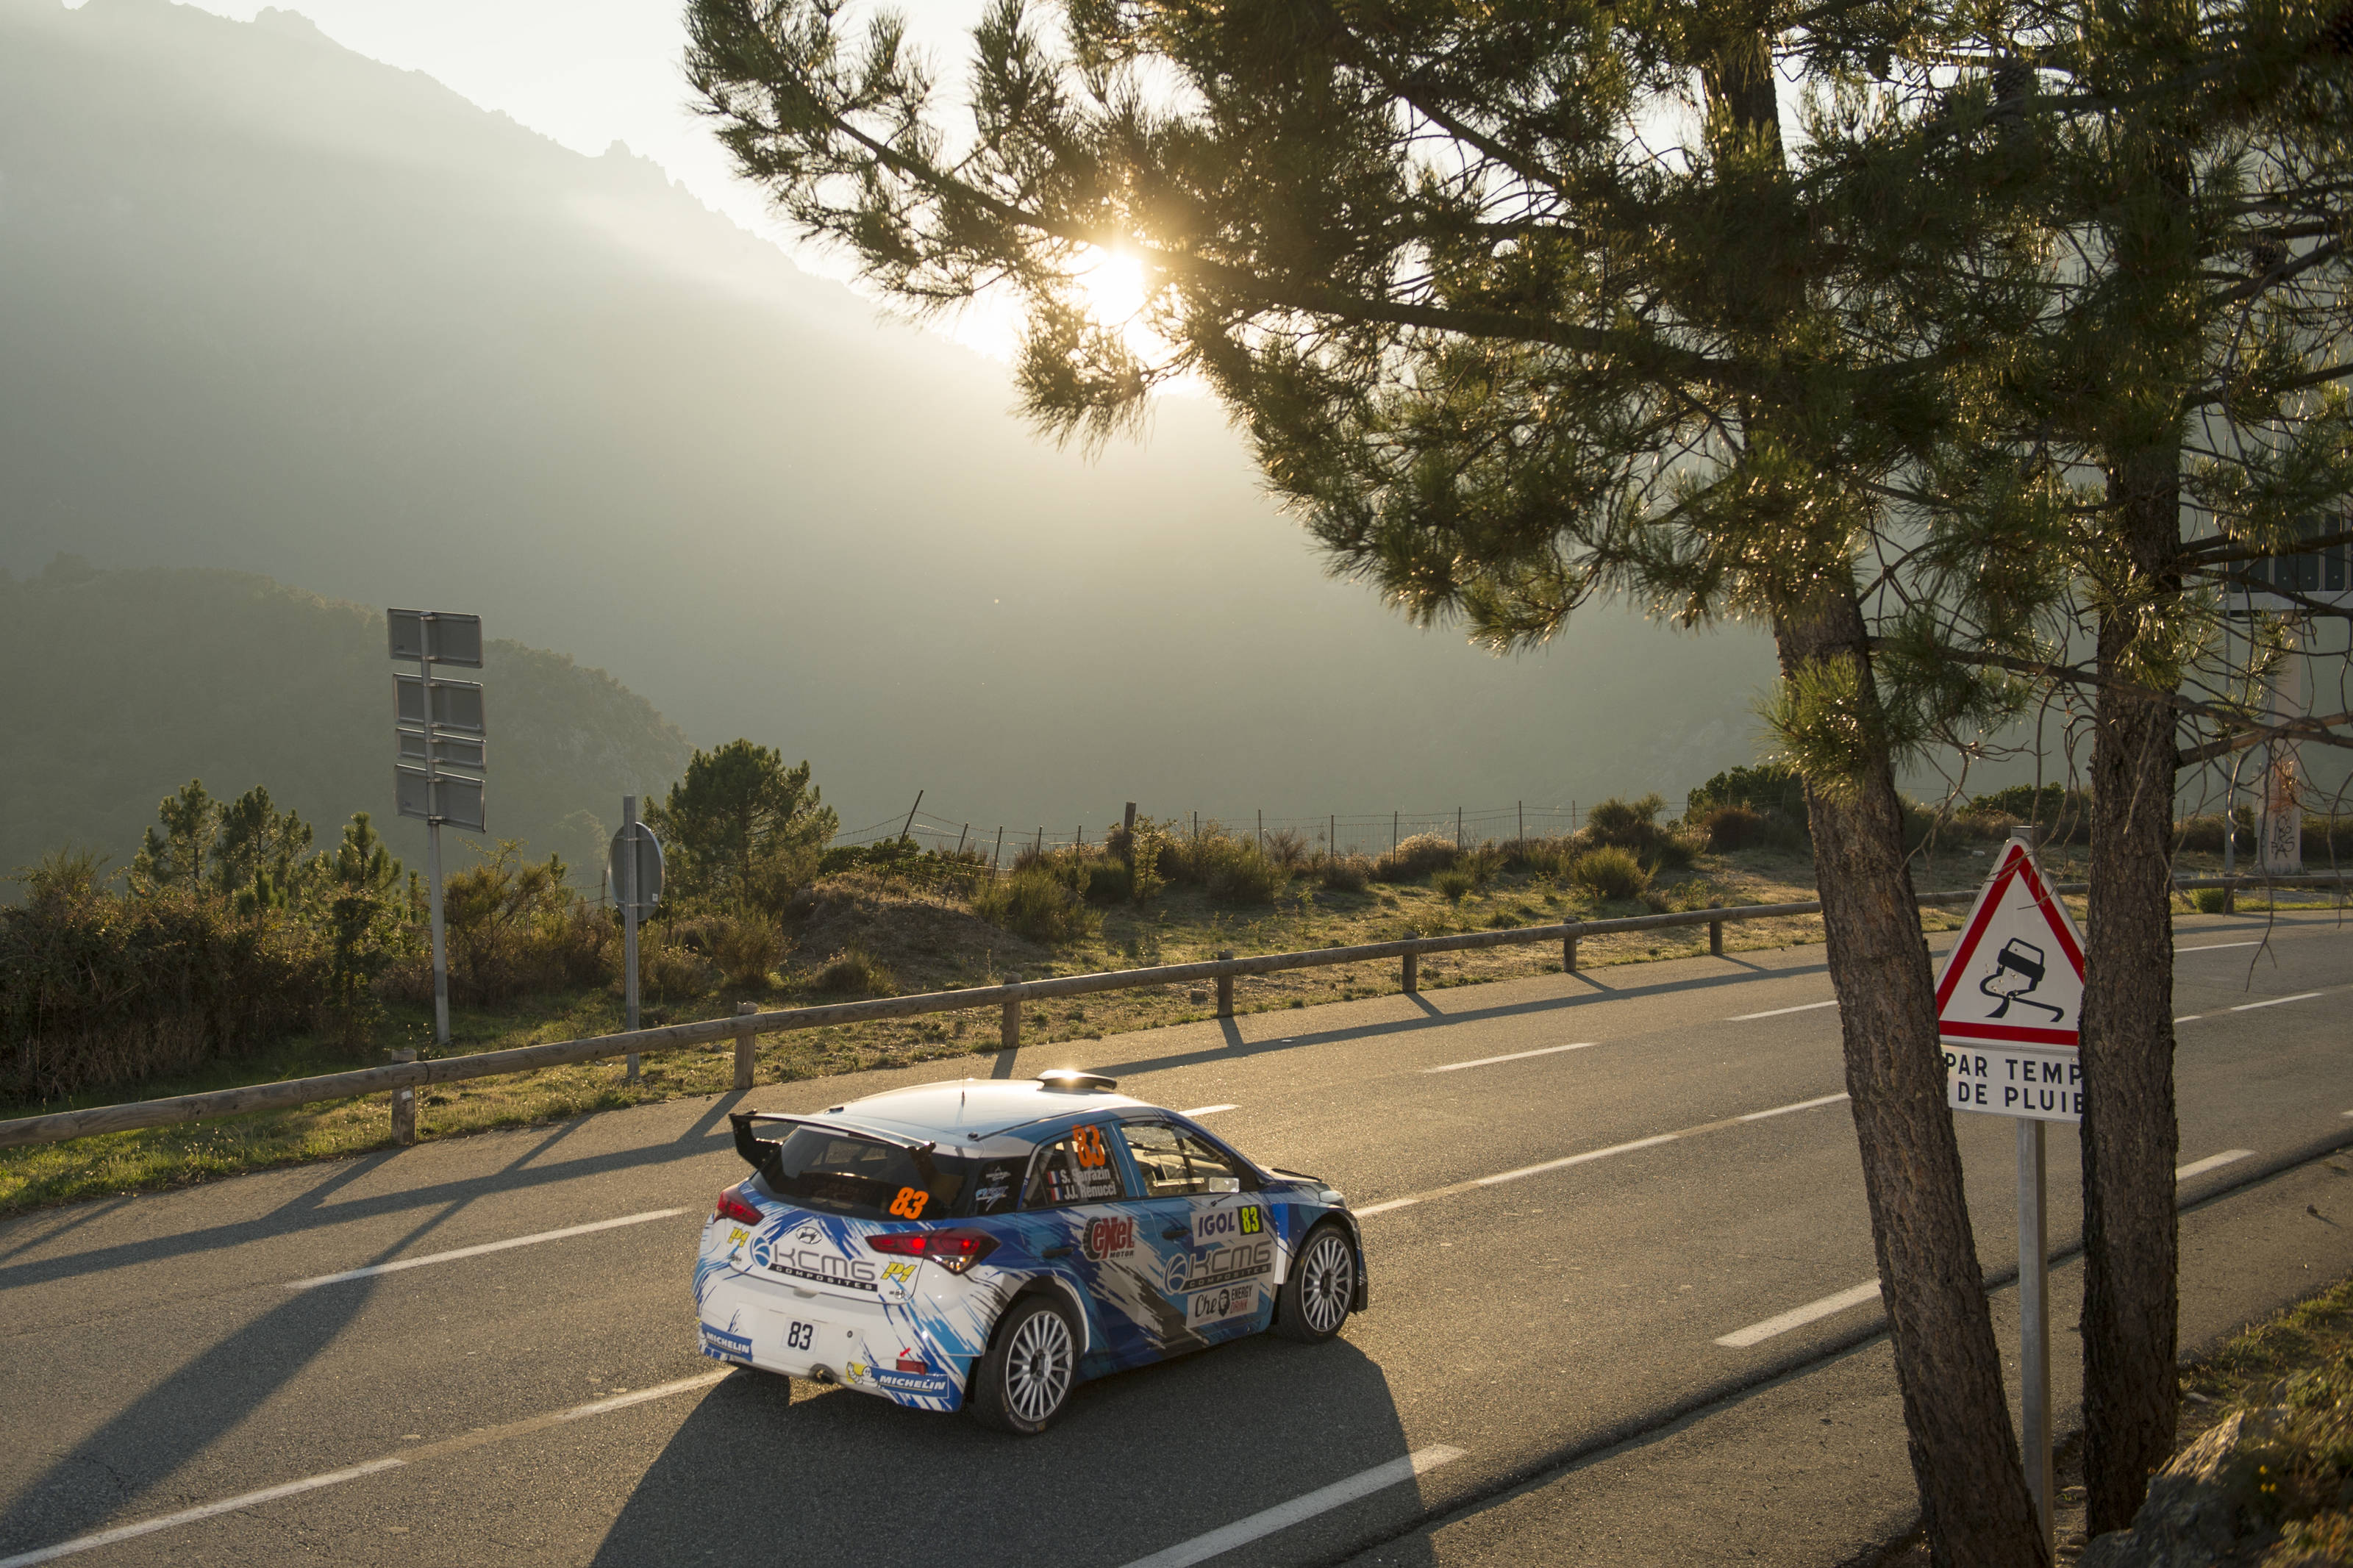 Stephane Sarrazin (FRA) drives on the roadsection during FIA World Rally Championship 2016 France in Ajaccio , France on September 30, 2016. He was deubuting the Hyundai i20 R5 on the event but retired to due mechanical issues. Photo: Jaanus Ree/Red Bull Content Pool